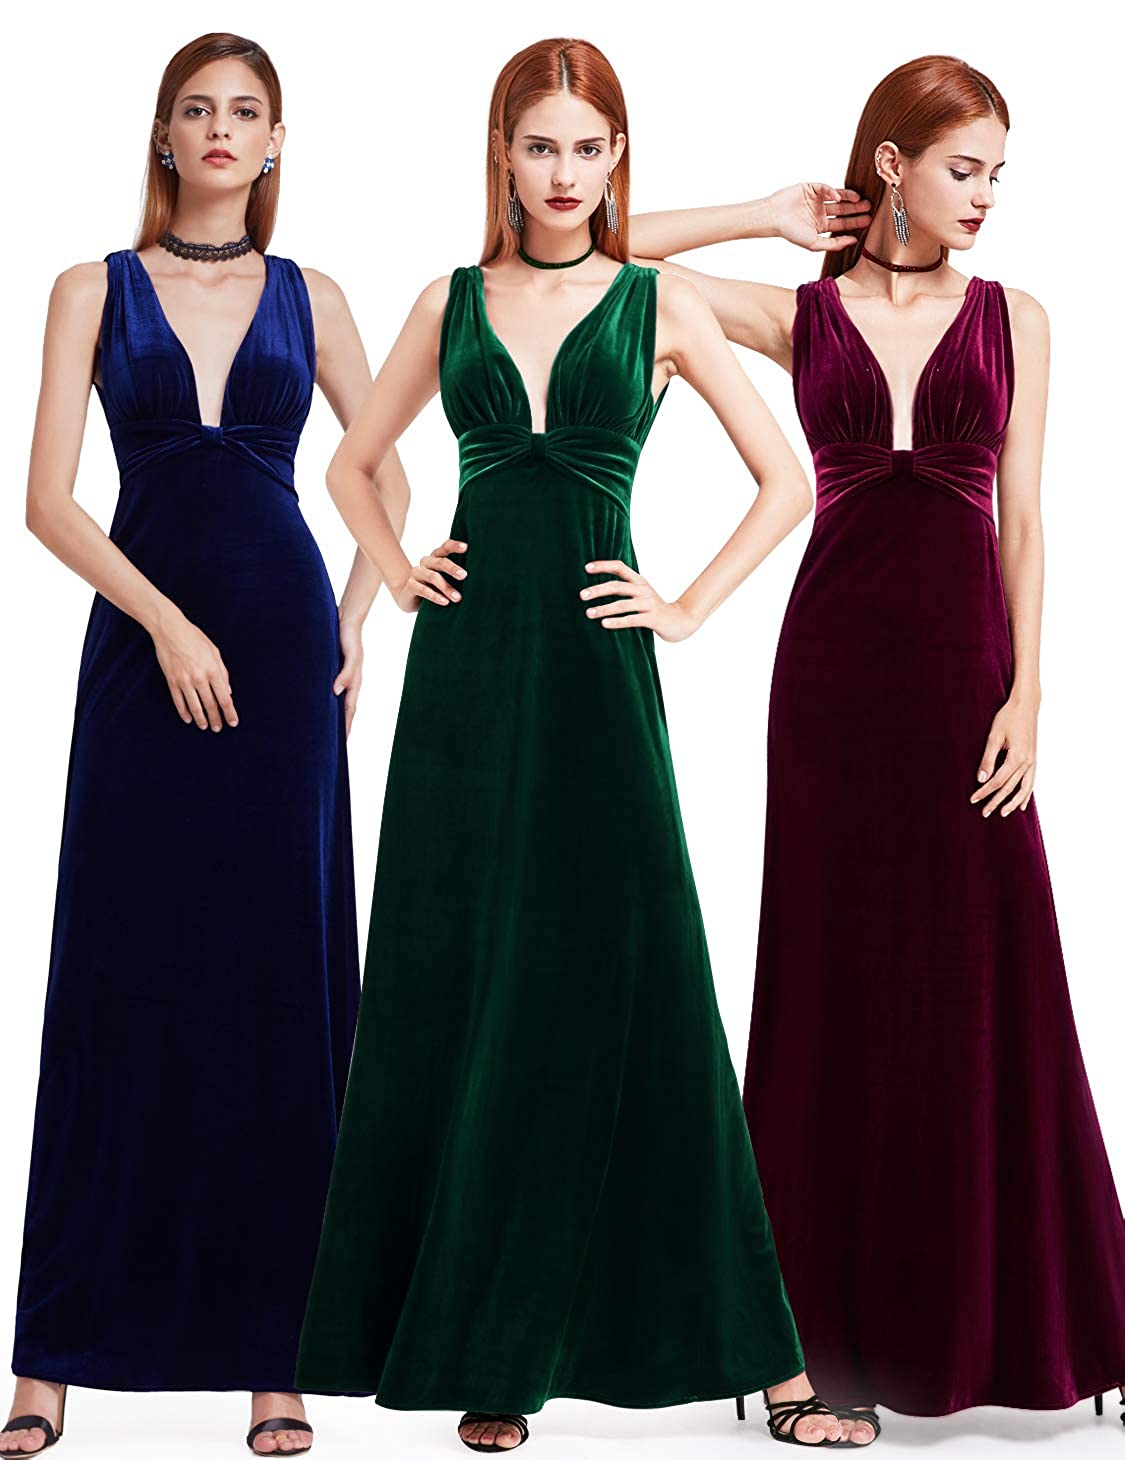 eeb09c7593 Ever-Pretty Women s Velvet Spaghetti Strap V Neck Evening Dress with Thigh  High Slit 07181 at Amazon Women s Clothing store